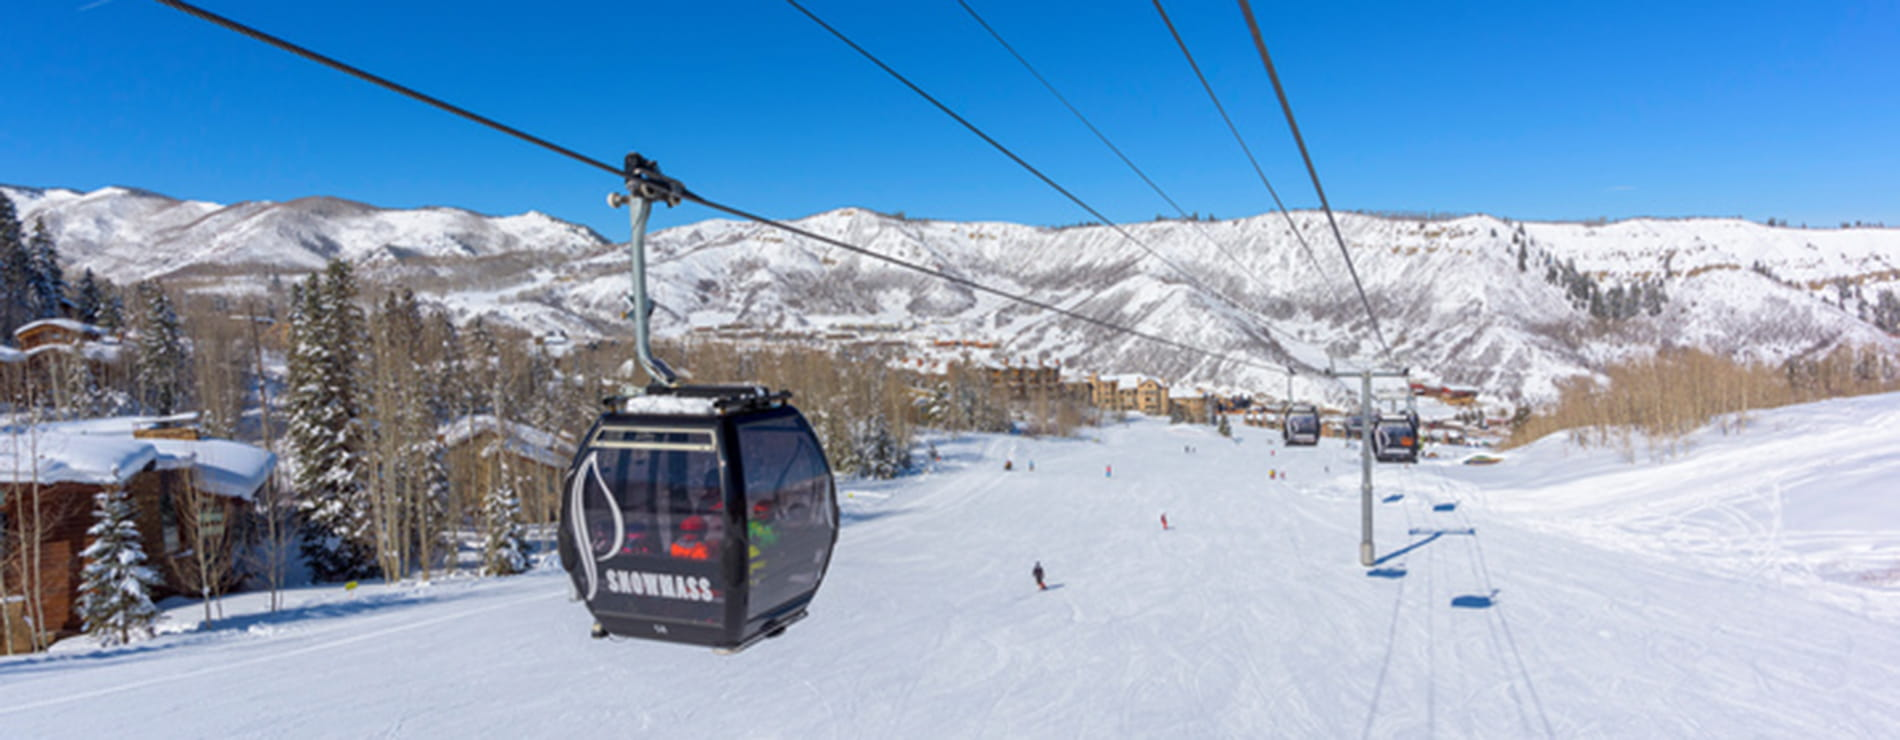 Mountain View The Silver Queen Gondola at Aspen Snowmass | Limelight Hotels | Aspen